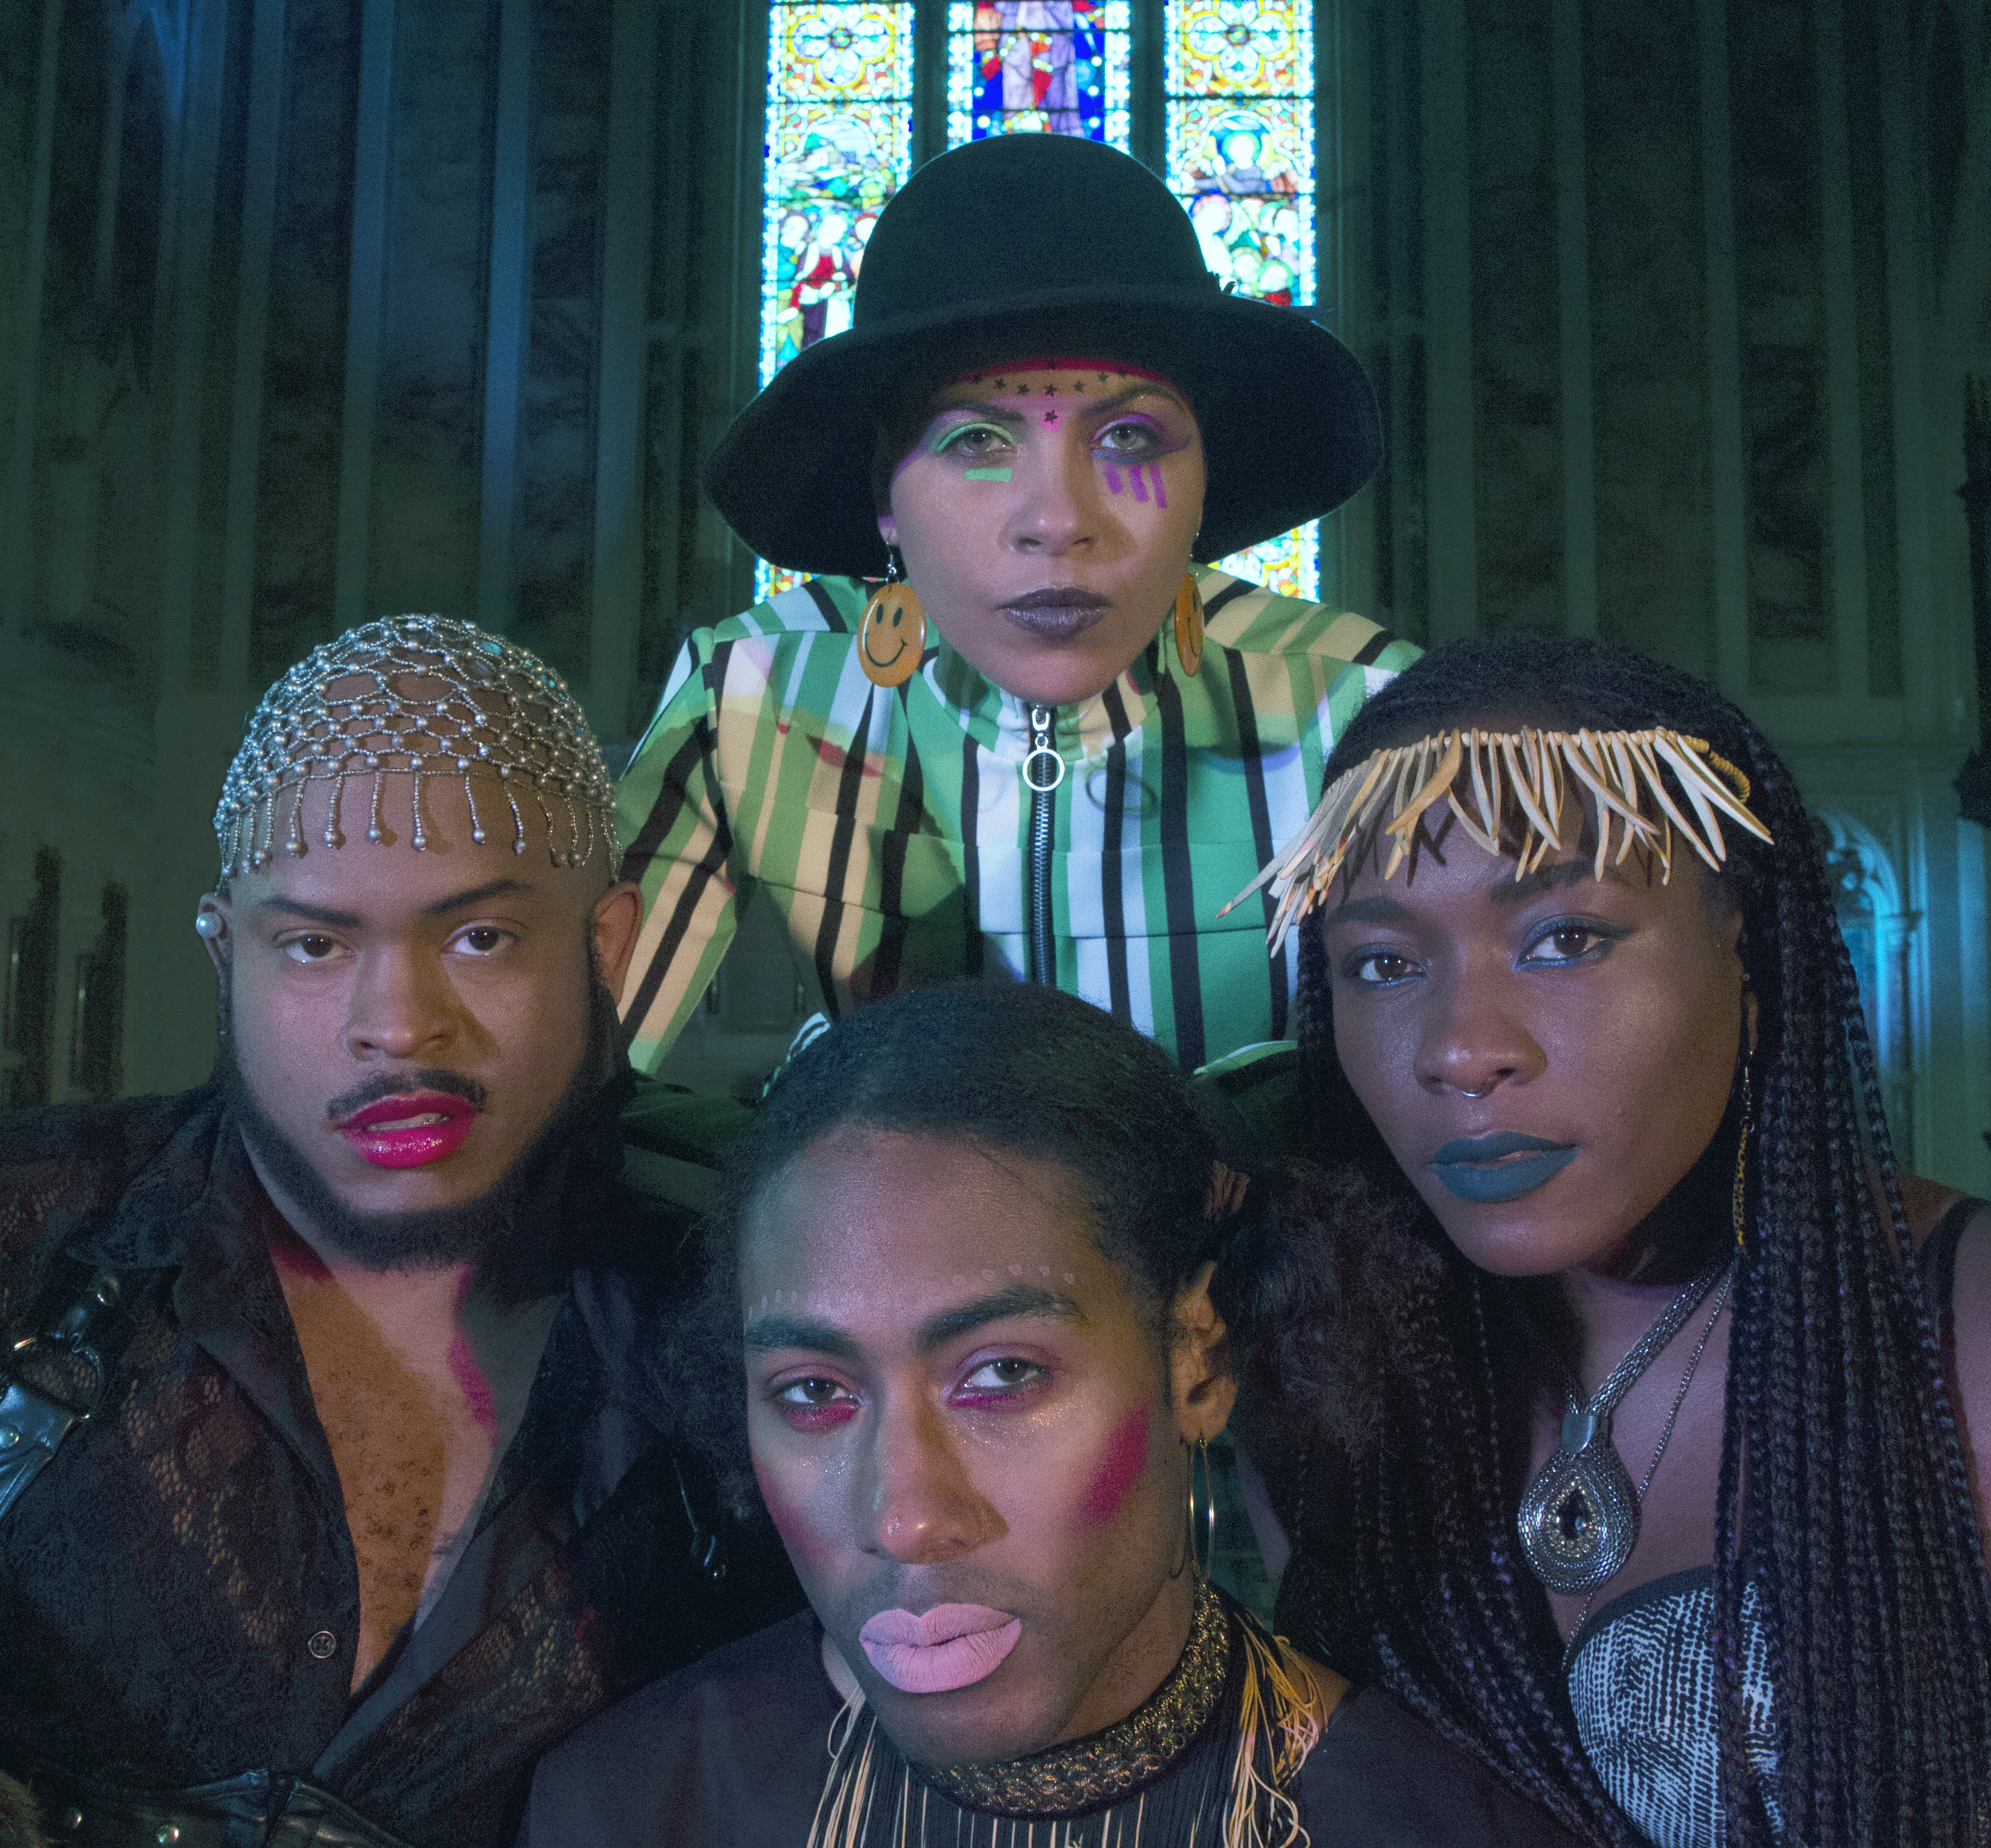 Four people of colour facing the camera standing in a church with a stained glass window in the background. They are wearing colourful costumes, make-up, hats and jewellery.